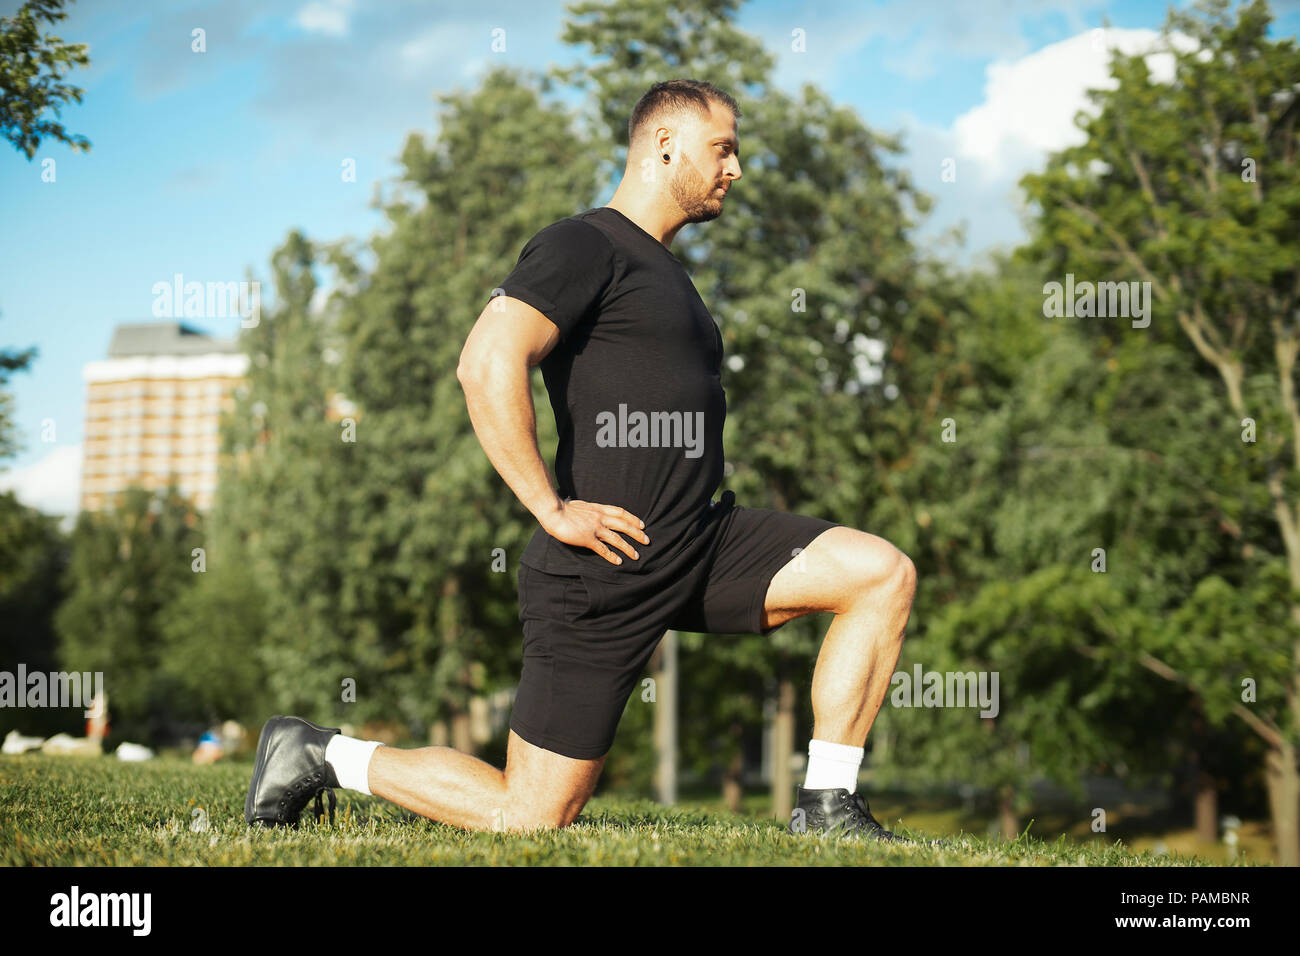 Young attractive man stretching legs outdoors doing forward lunge Man is on focus and foreground, background is blurred. - Stock Image